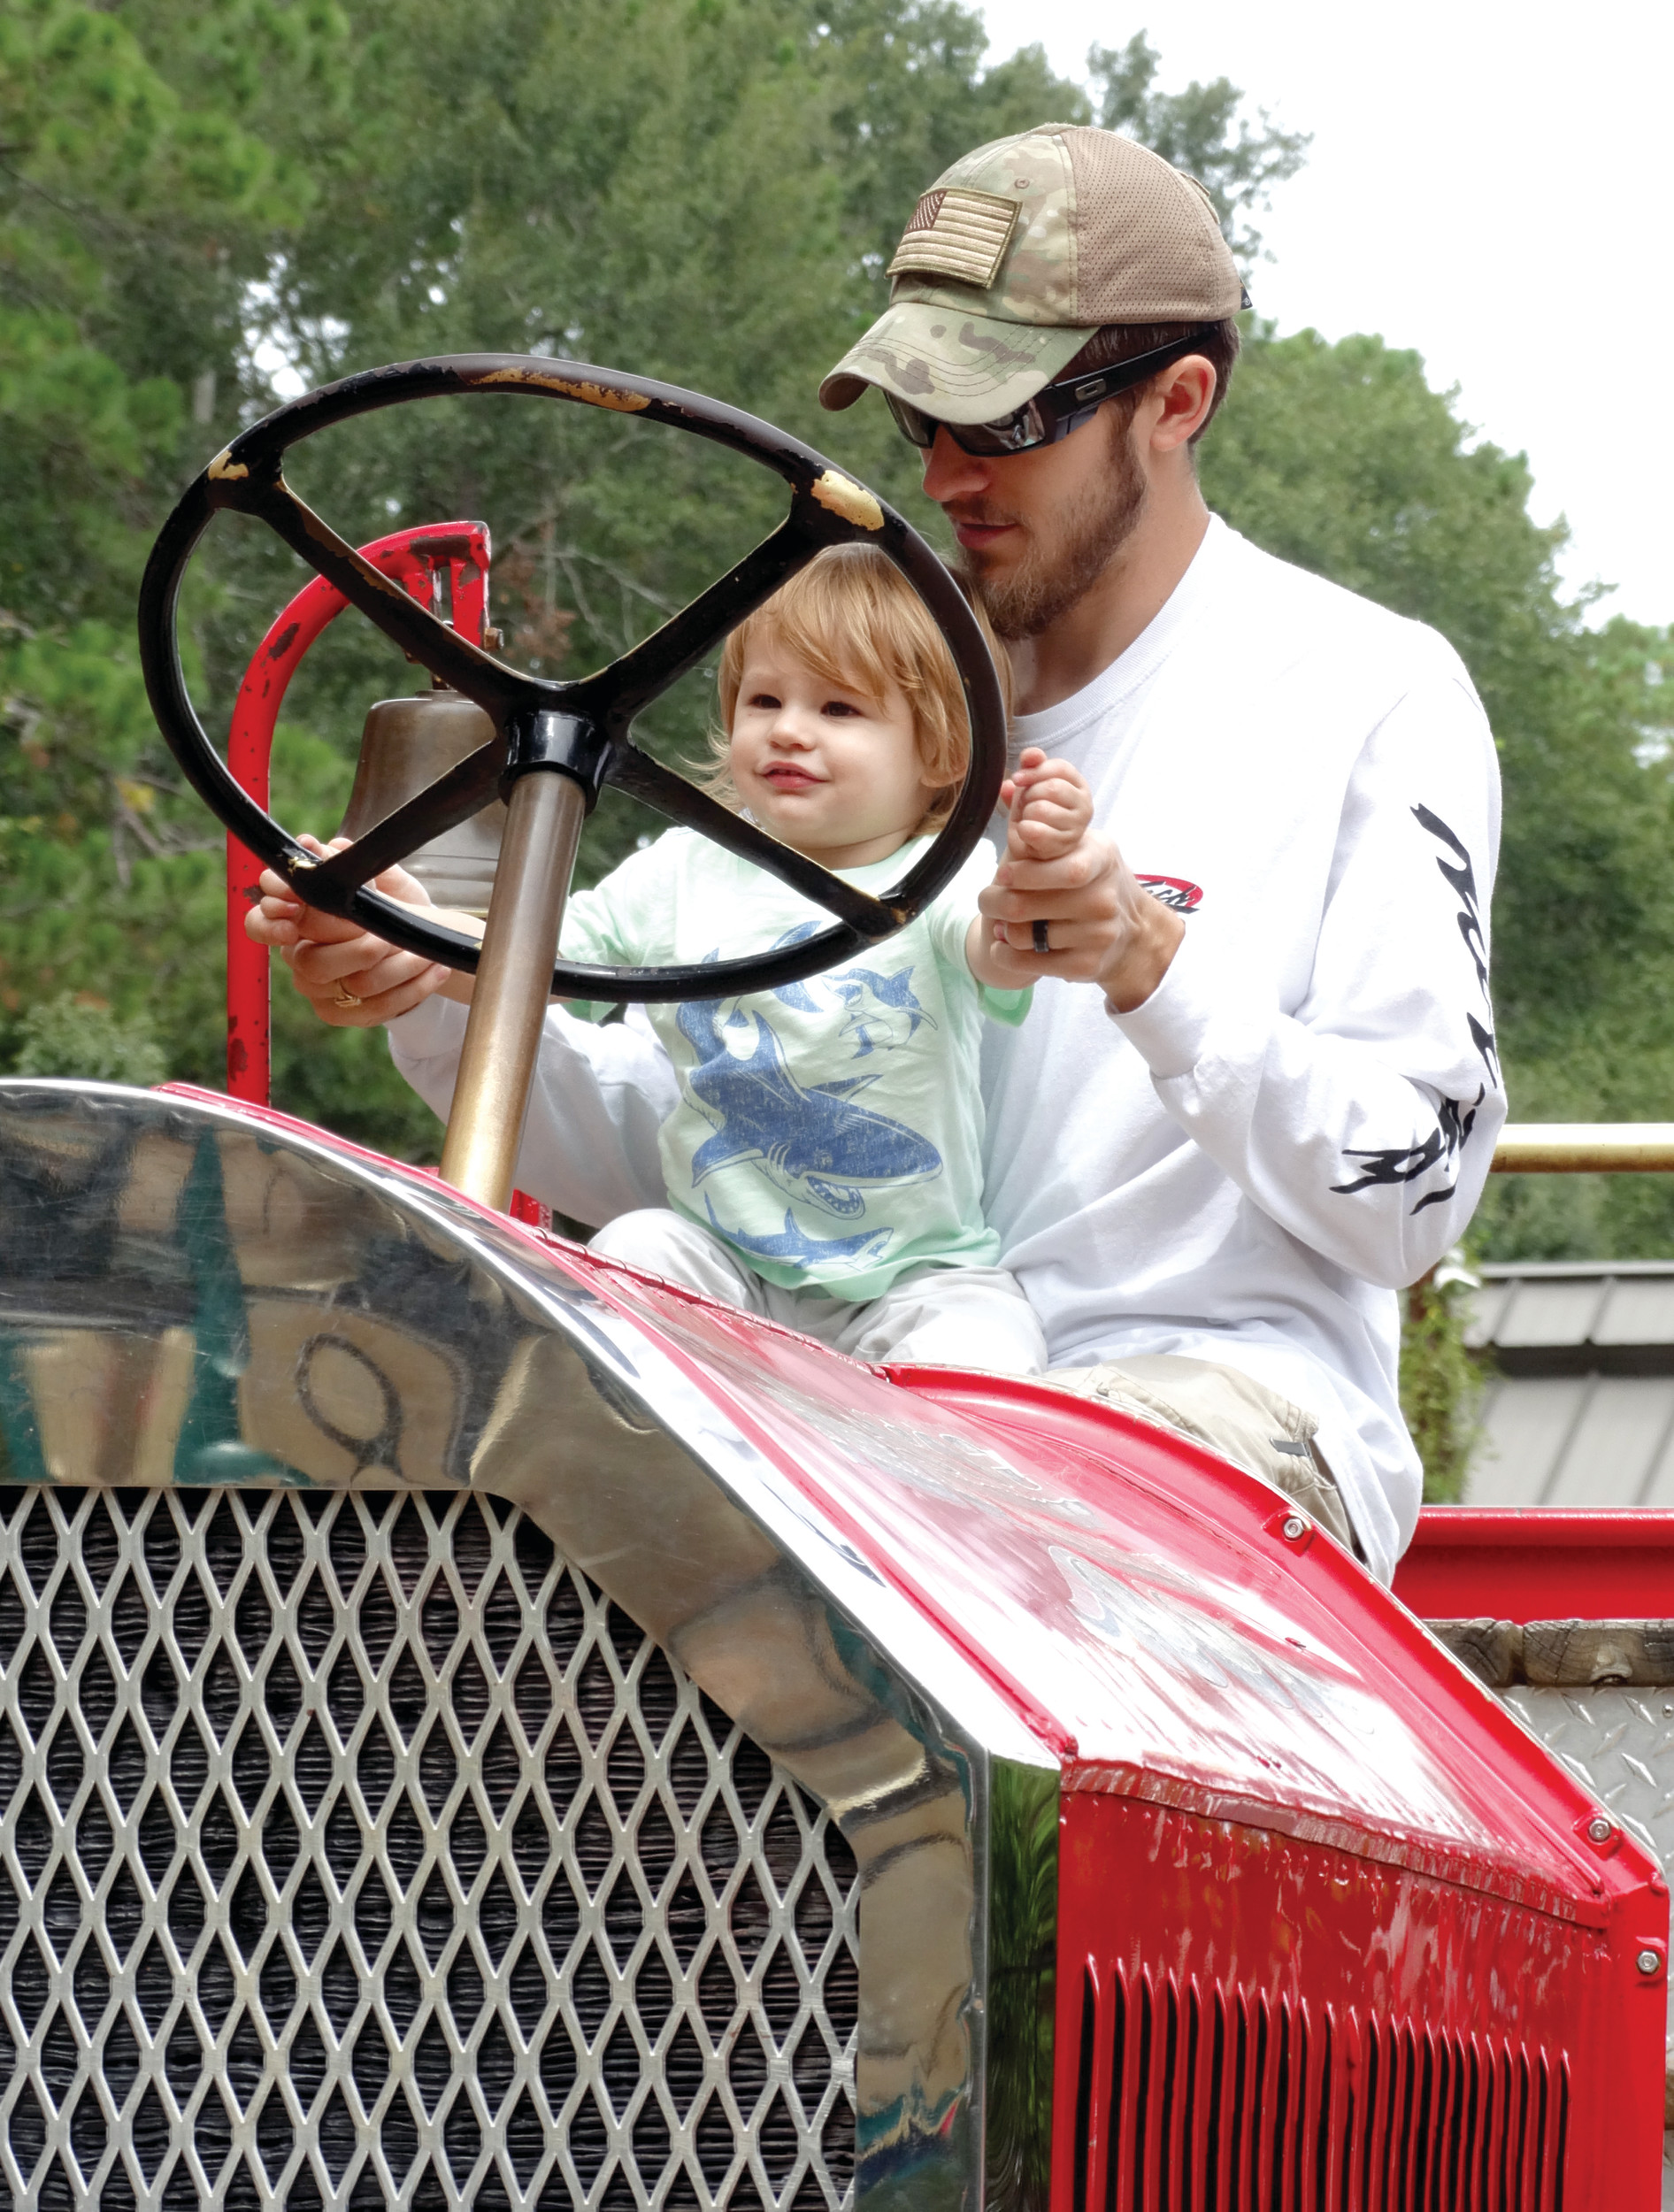 "Gunner Ceresa, 18 months, ""drives"" the fire truck at the Swan Lake-Iris Gardens playground on Sunday afternoon with the help of his father, Adam Ceresa. Adam, his wife, Tonya Ceresa, and Adam's sister, Sarah Ceresa, evacuated Cape Coral, Florida, before Hurricane Irma and stayed with relatives in Sumter. The 1924 Seagrave Fire Truck was in use in Sumter for 30 years, and in the 1960s, it was placed at the Swan Lake playground. The truck was completely overhauled in 2013 thanks to G&G Metal Fabrication owner Tom Garrity, Bailey Automotive, Carolina Truck and Trailer, the City of Sumter and Aycock Richardson Monument."